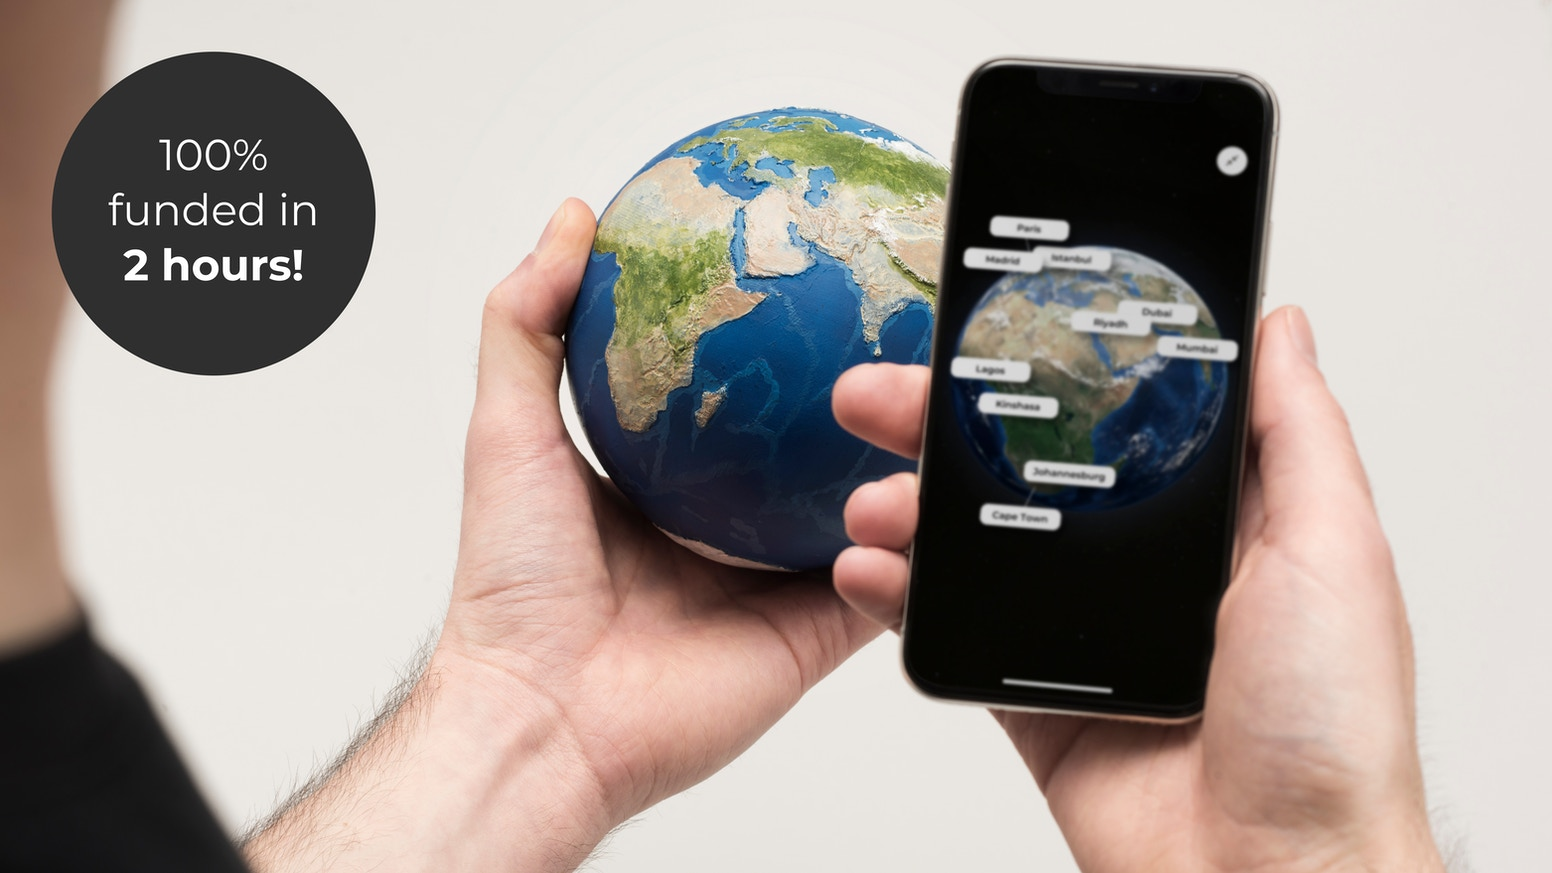 A 3D Printed Hand Painted Globe Taking You Through Time To Explore Our